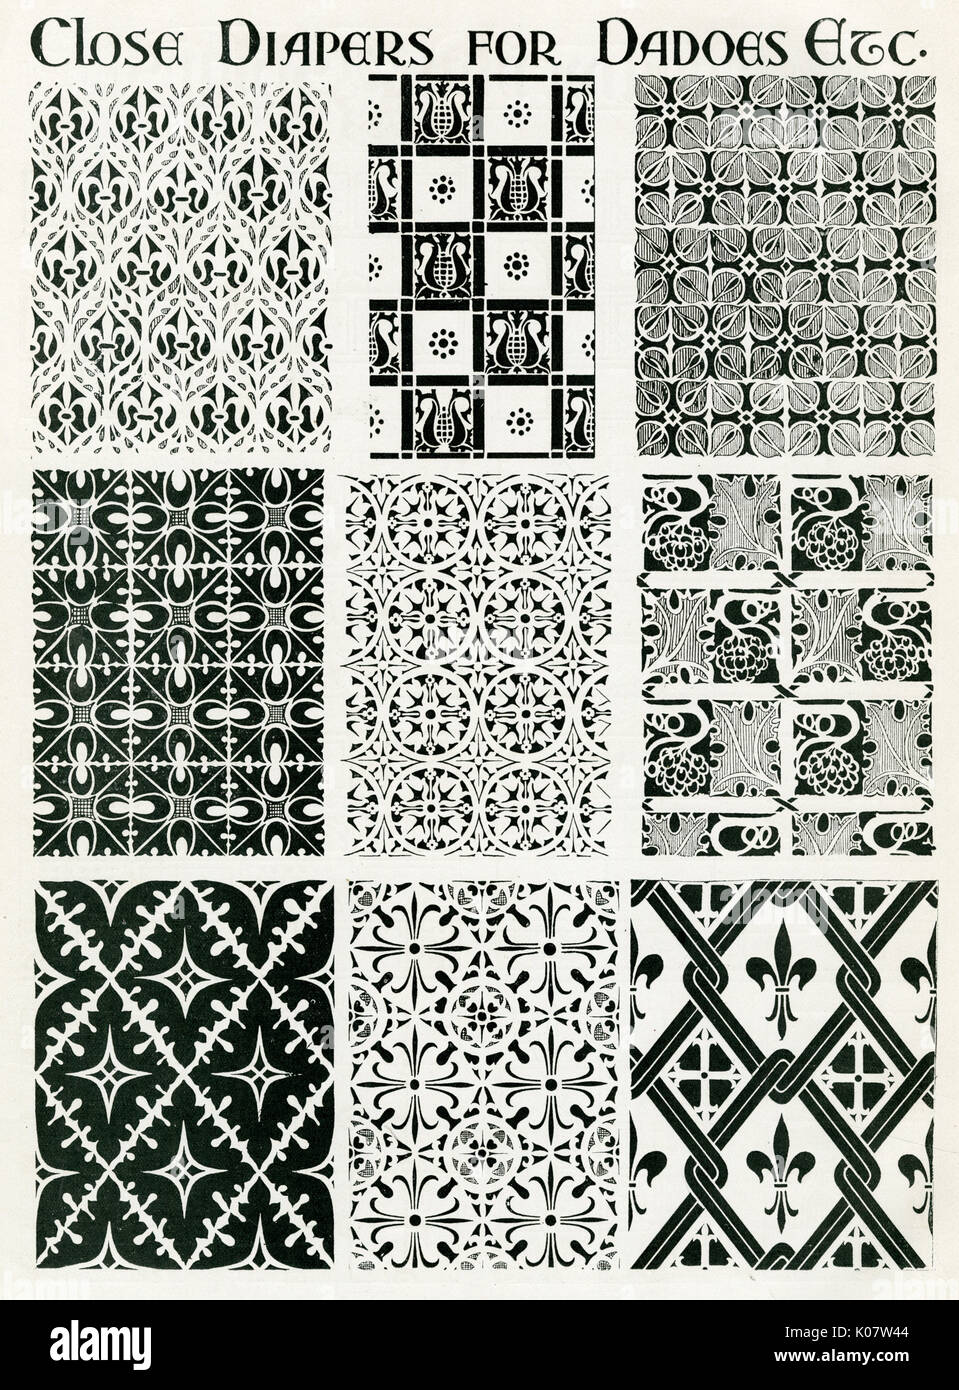 Selection of interior repeat pattern dadoes for churches. - Stock Image